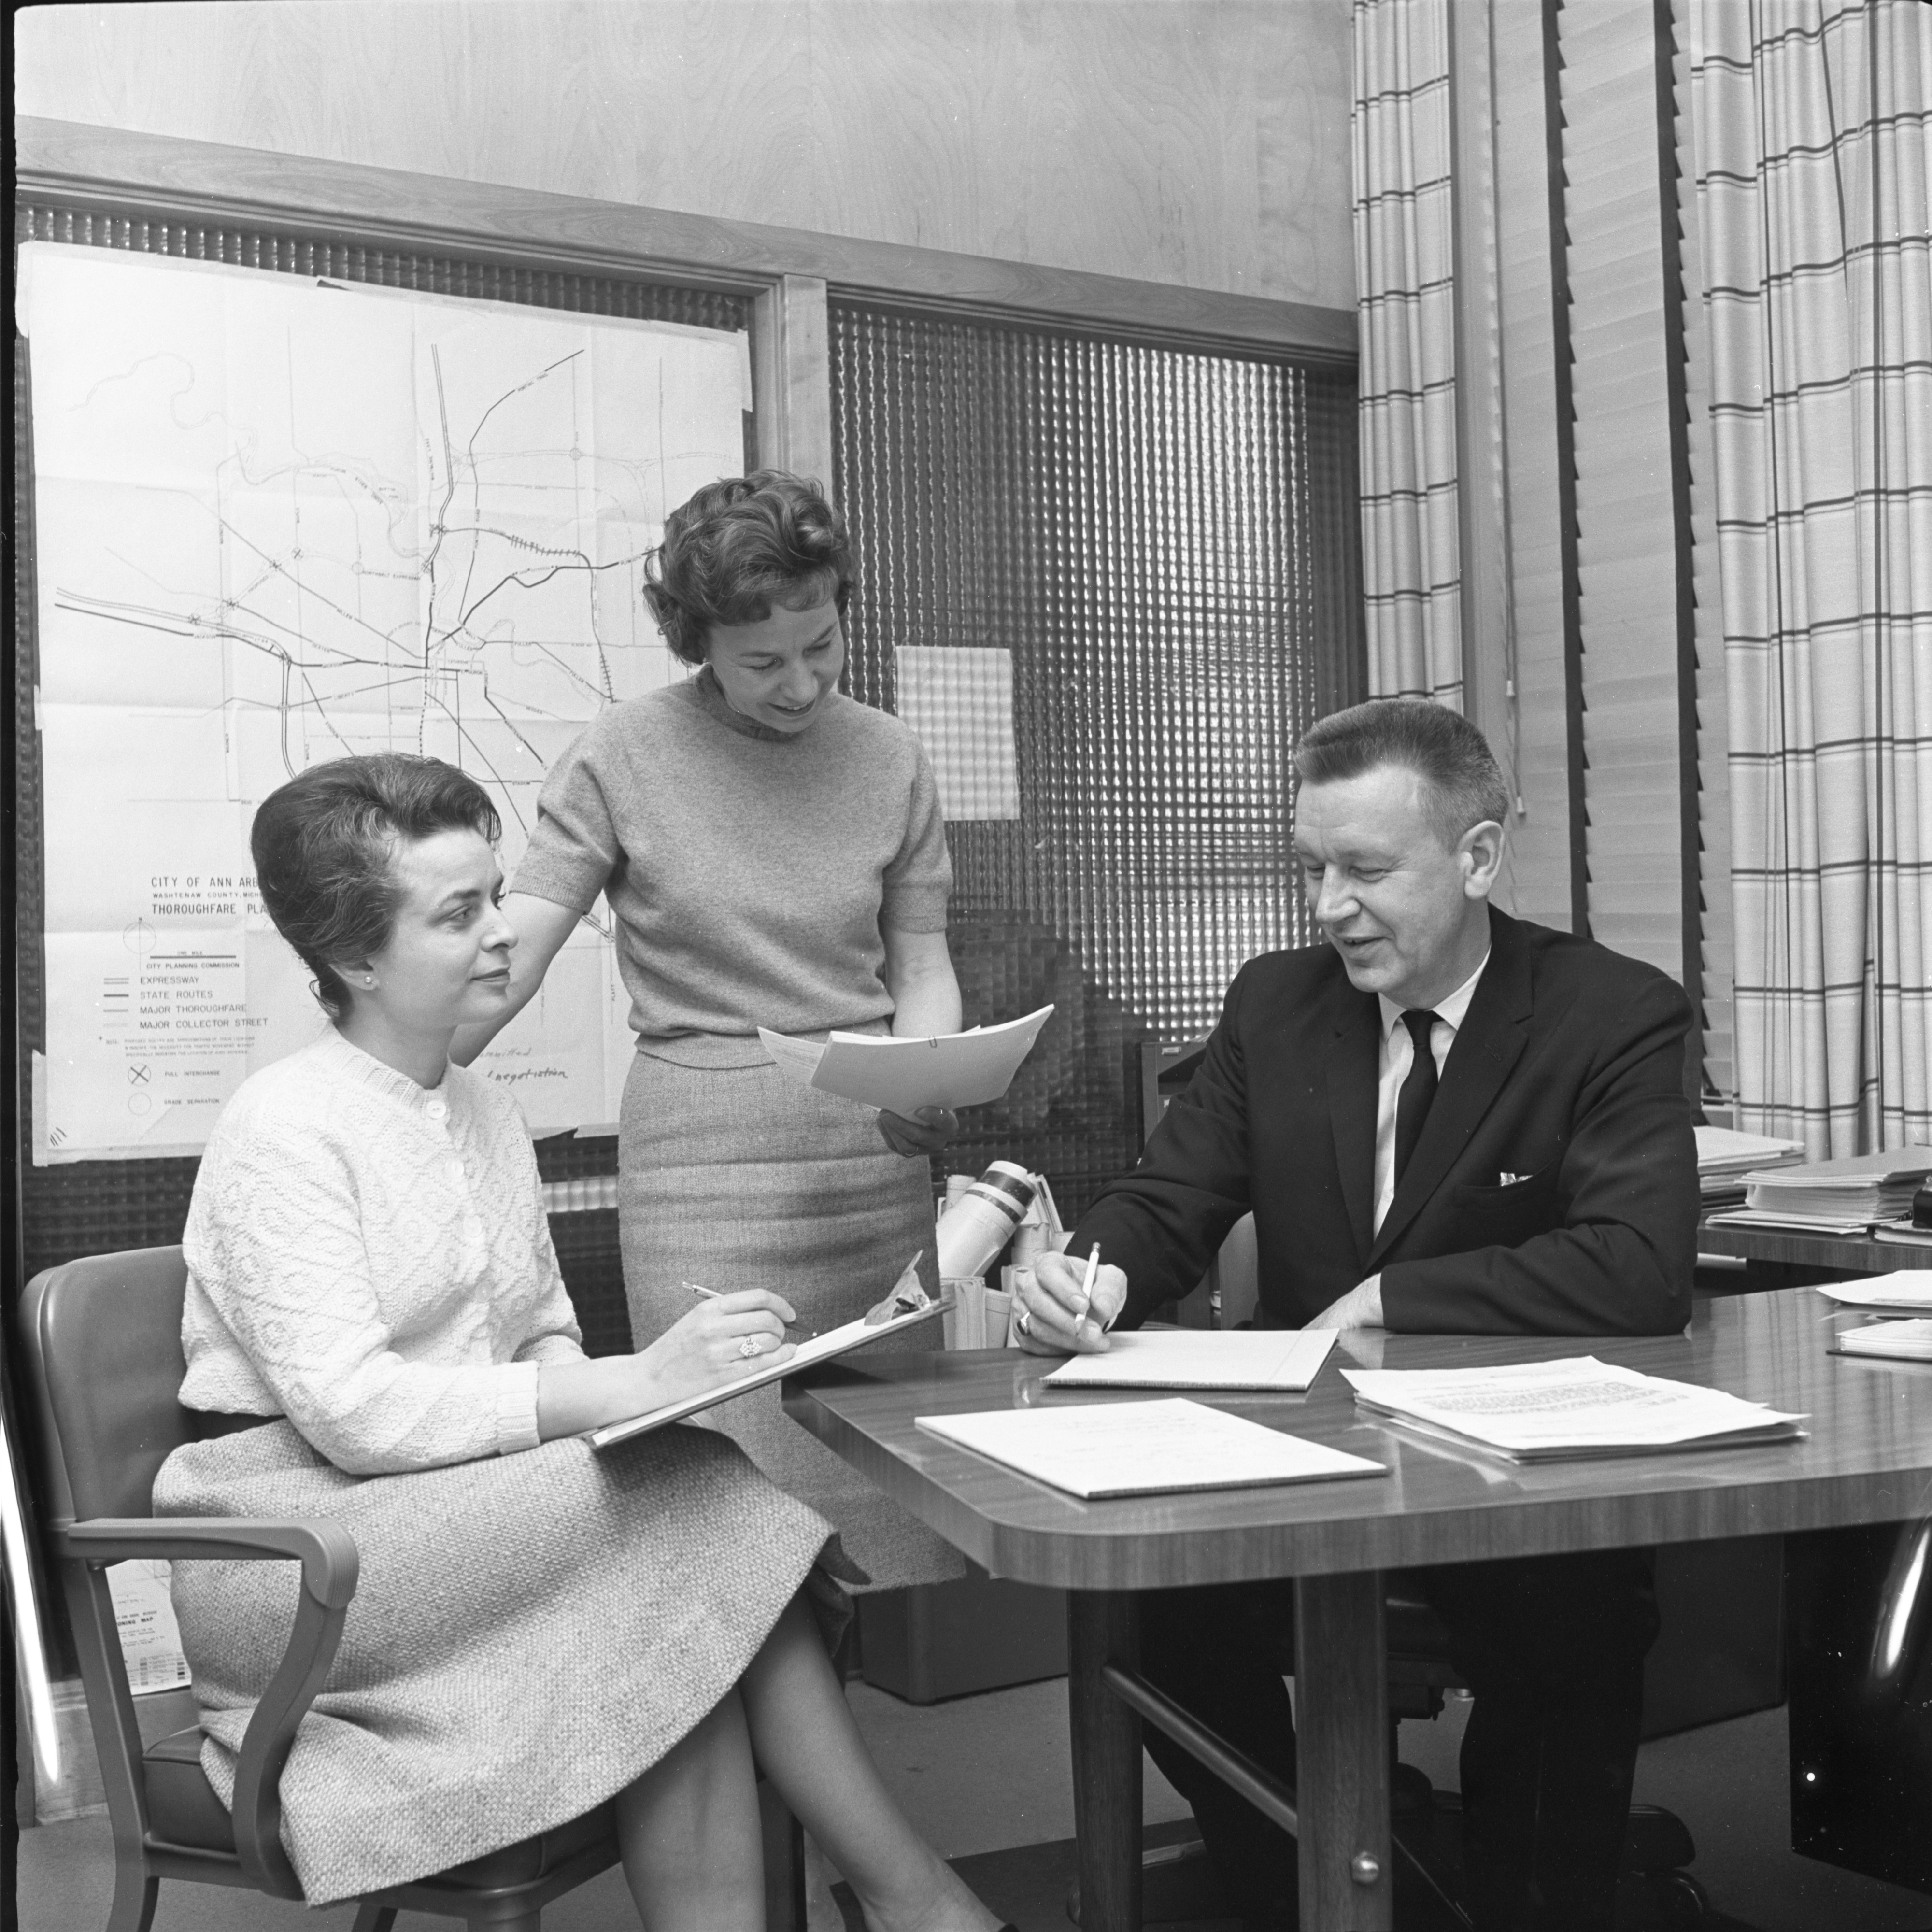 City Administrator Guy C. Larcom jr. Is Interviewed By League Of Women Voters Members, March 1962 image